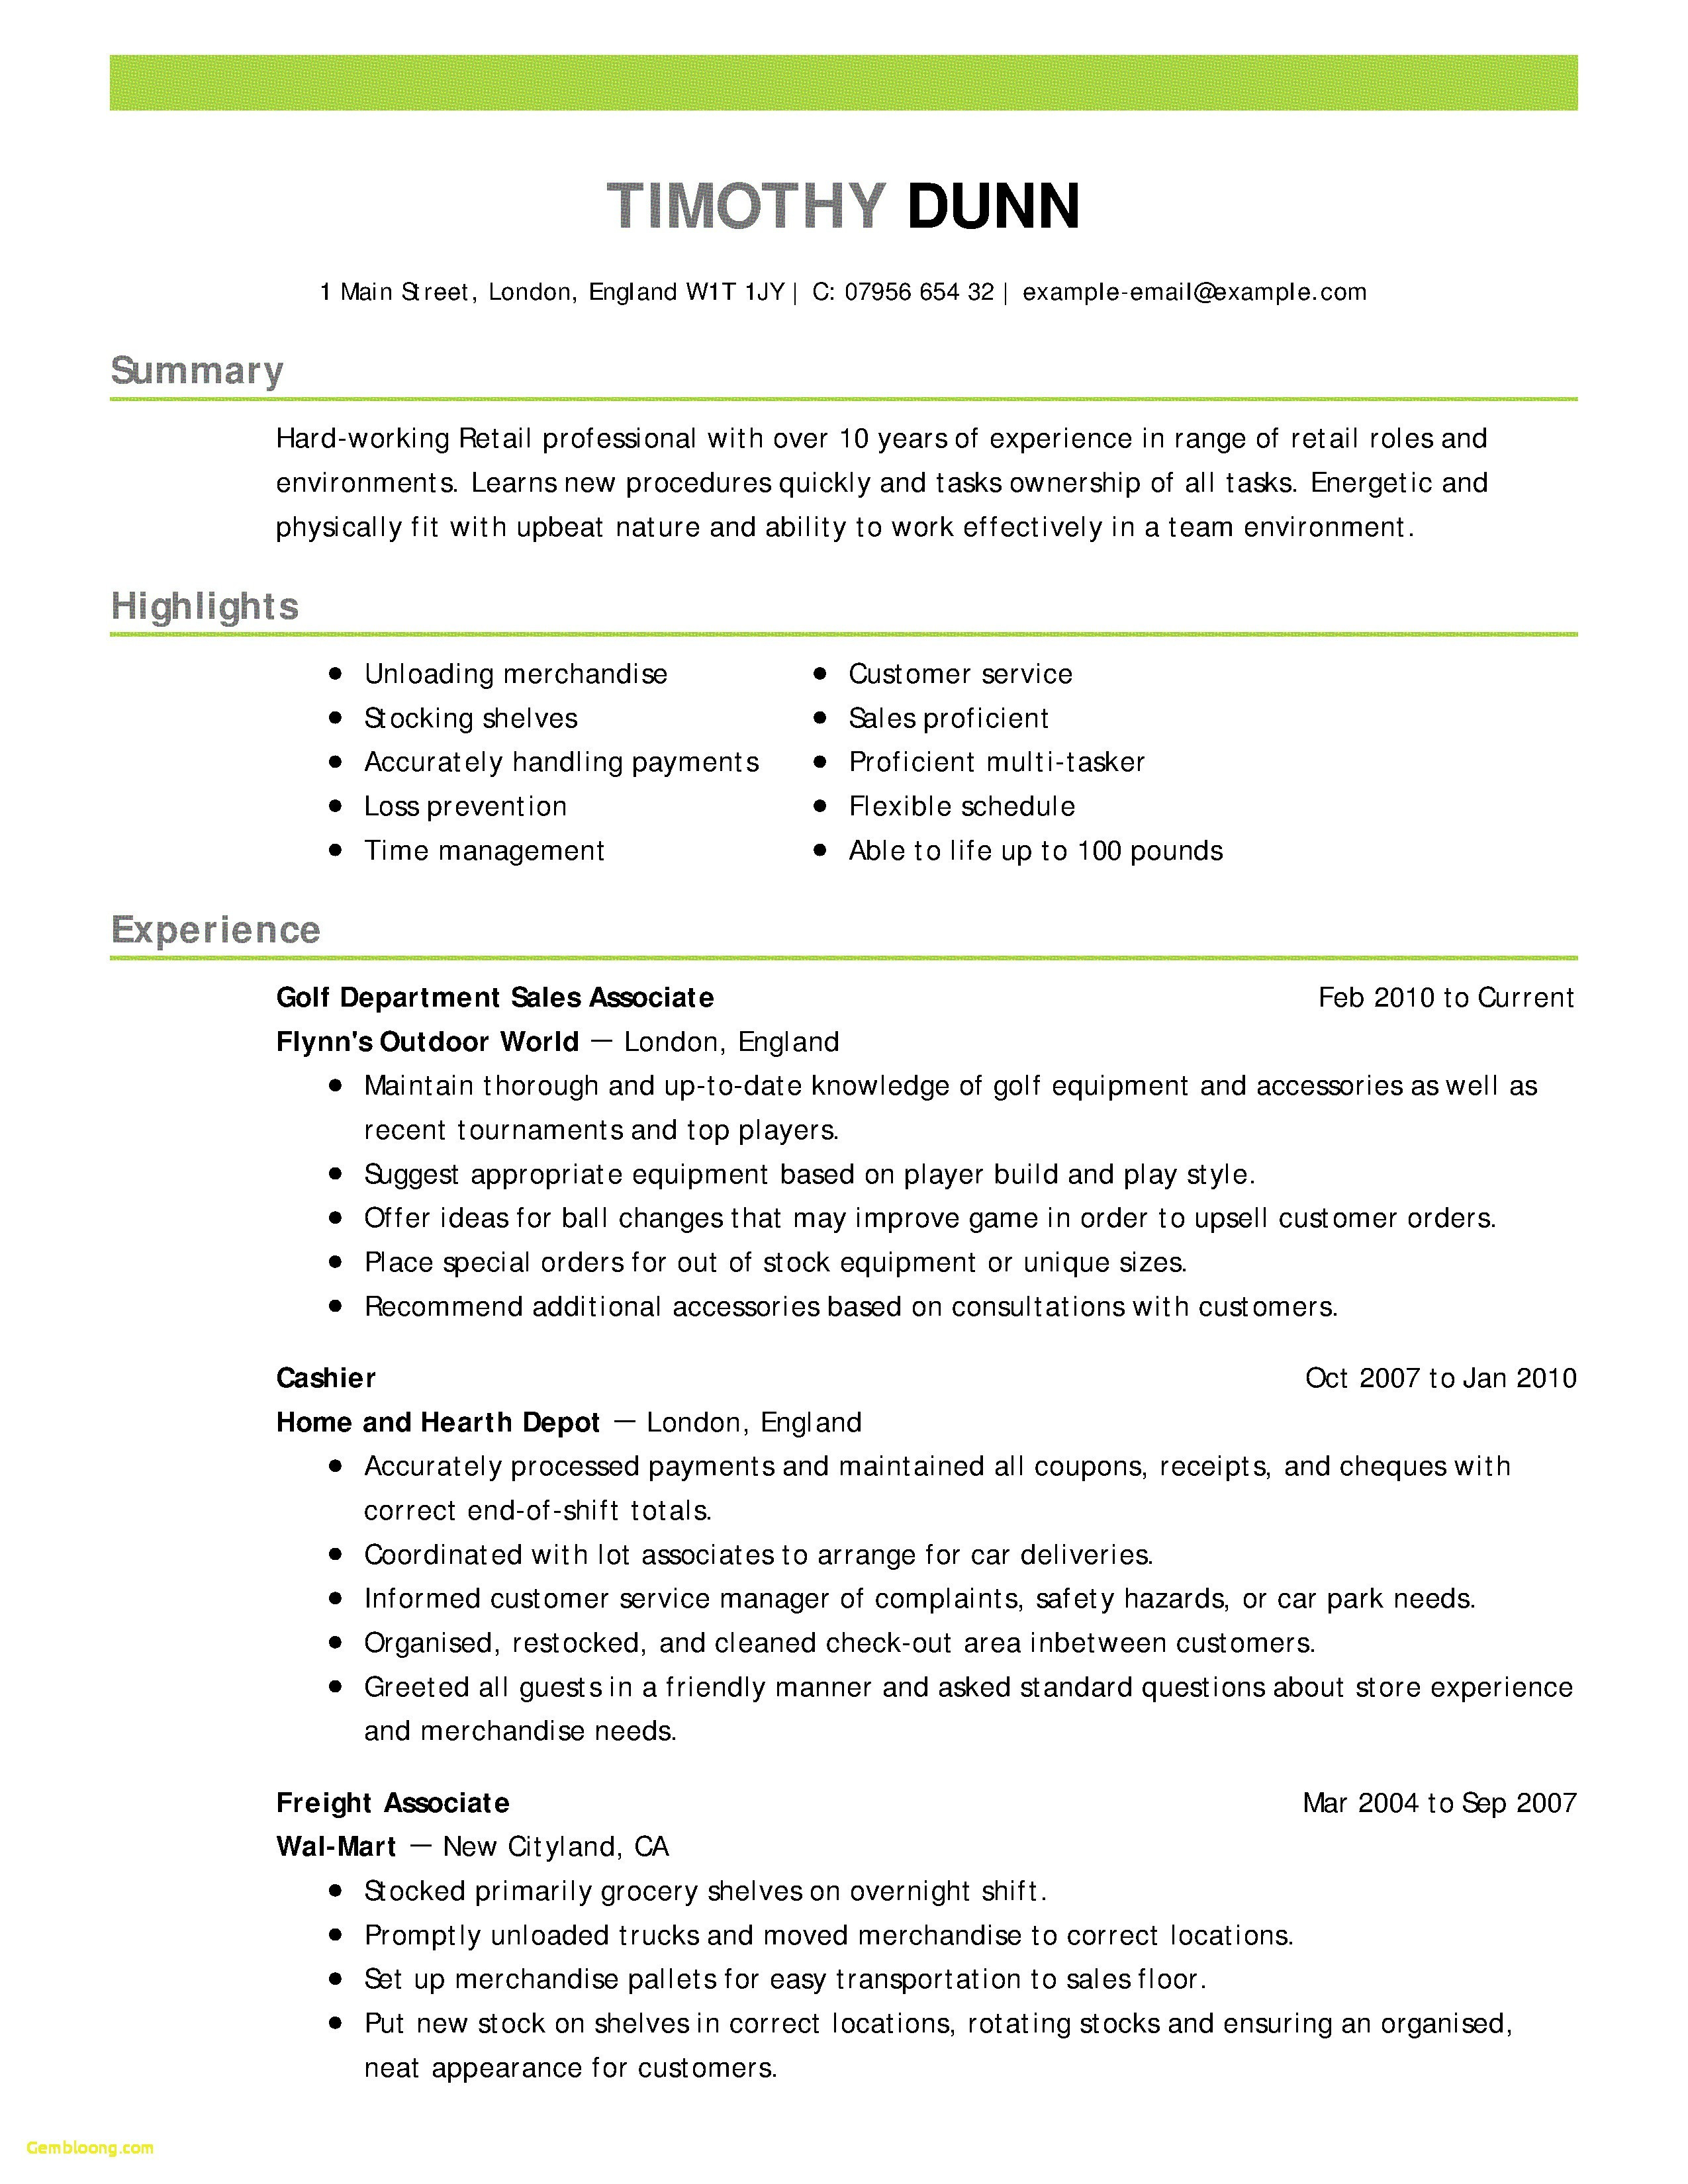 Hvac Resume Template - Hvac Resume Template Fresh Hvac Resume Samples Inspirational 22